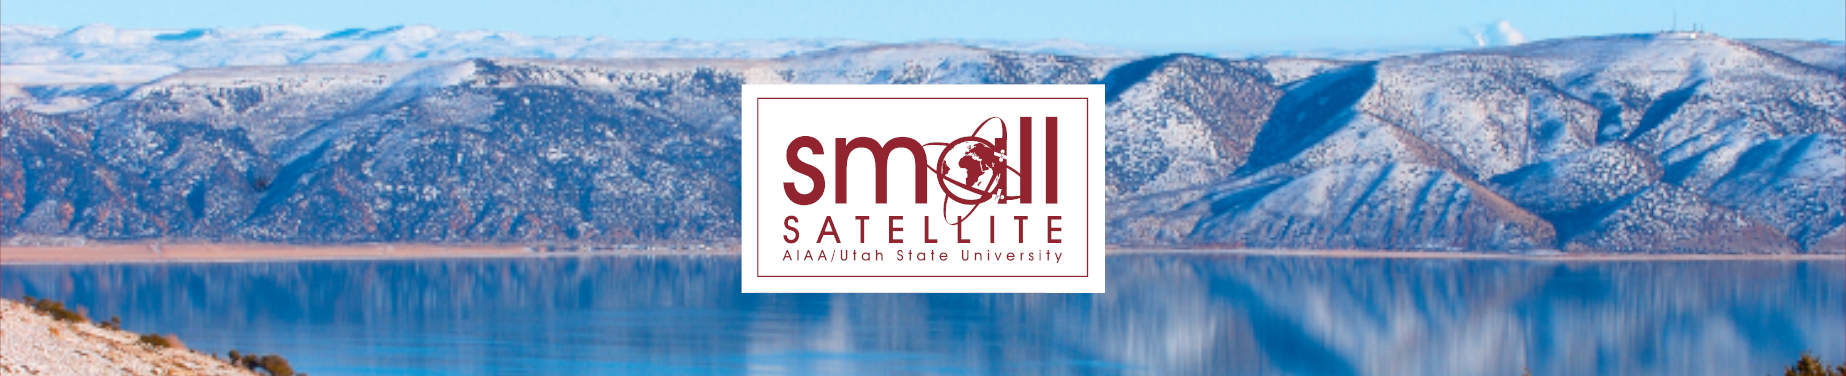 Meet us at SmallSat 2019!